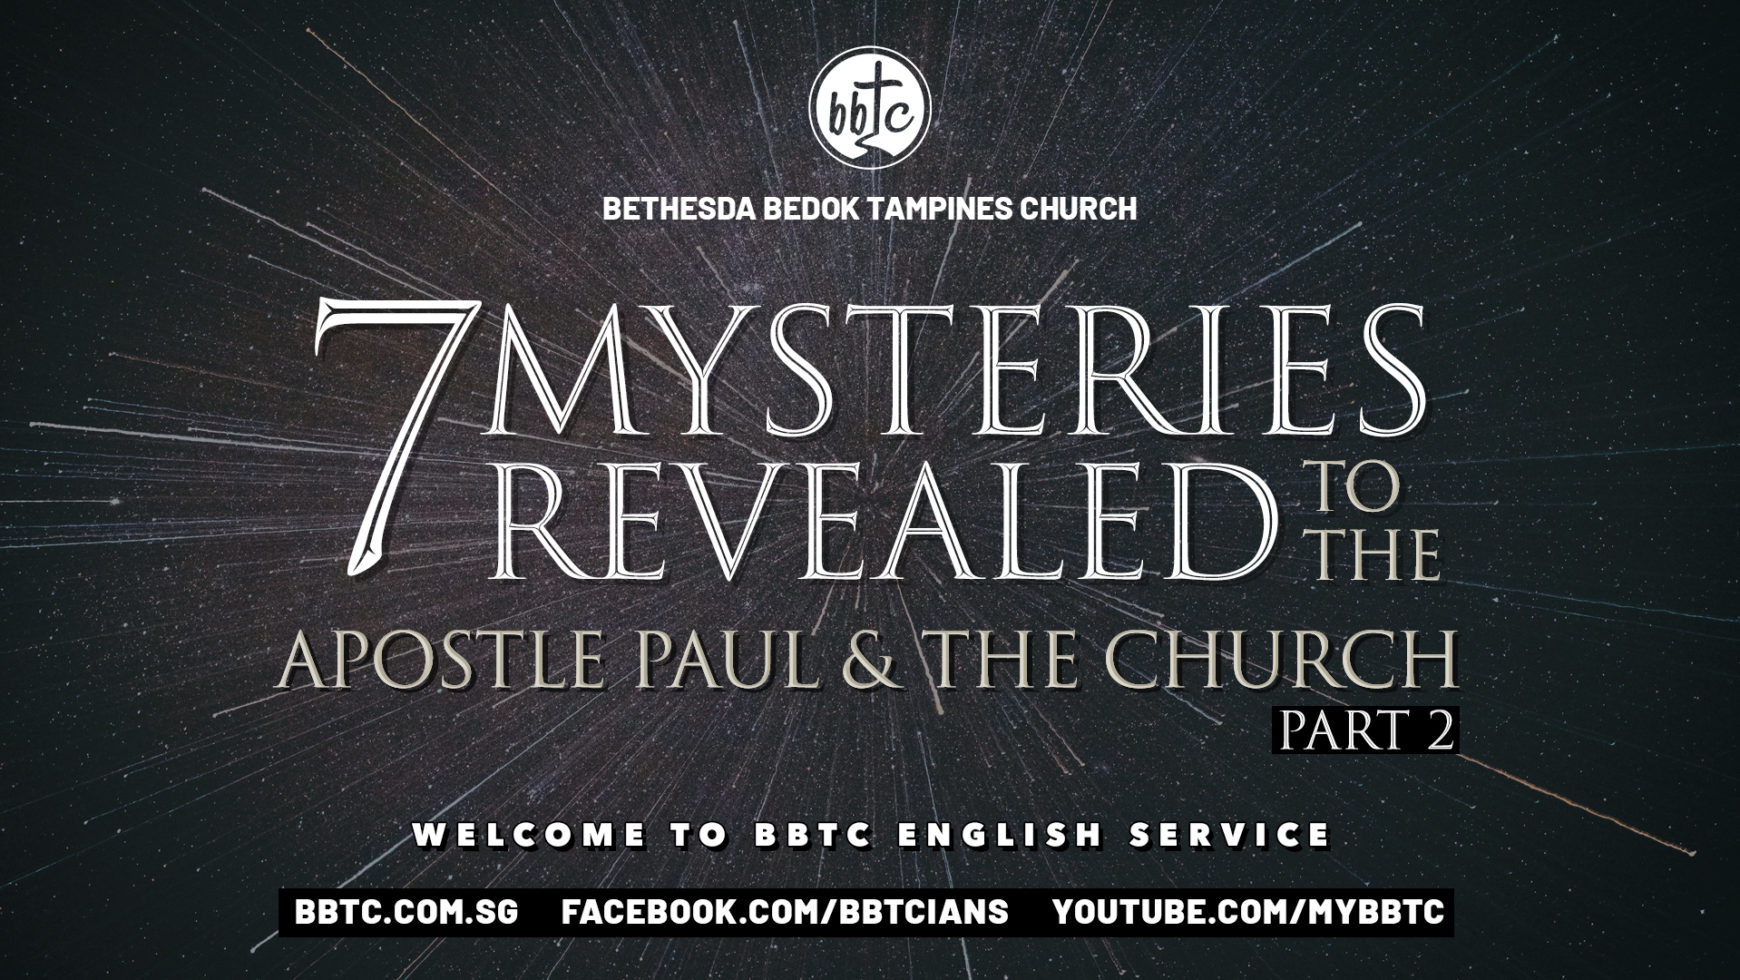 7 MYSTERIES REVEALED TO THE APOSTLE PAUL AND THE CHURCH (PART 2)